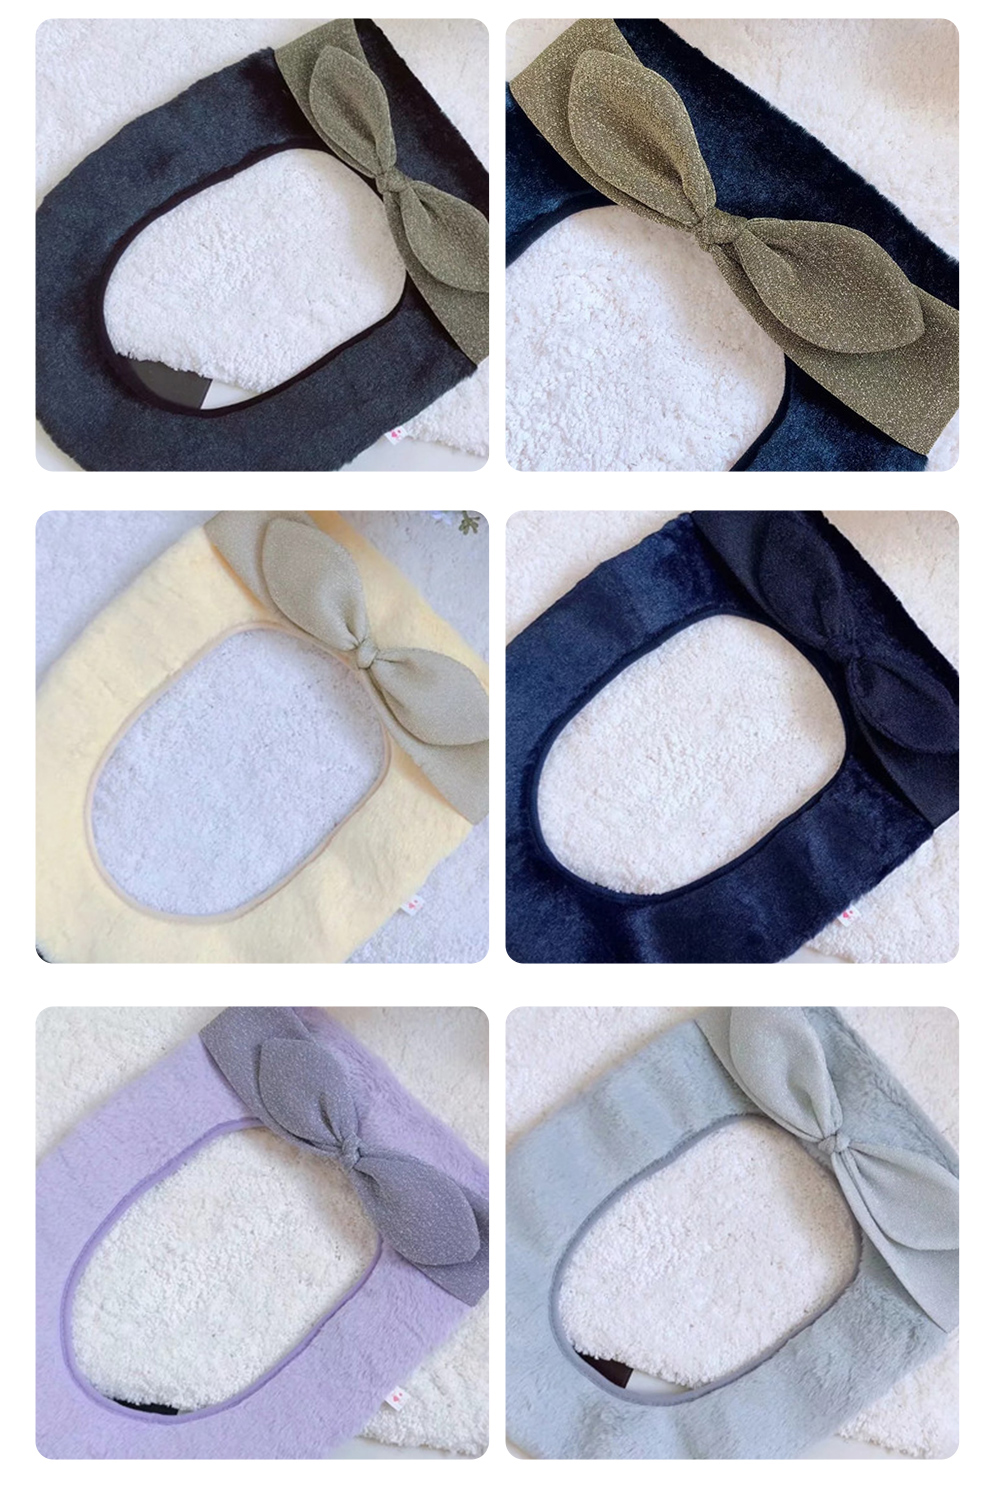 2019 Autumn and Winter Warmer Thicker Fuzzy Pretty Bowtie and Bright Velvet Toilet Seat Cover withToilet Hoist 7